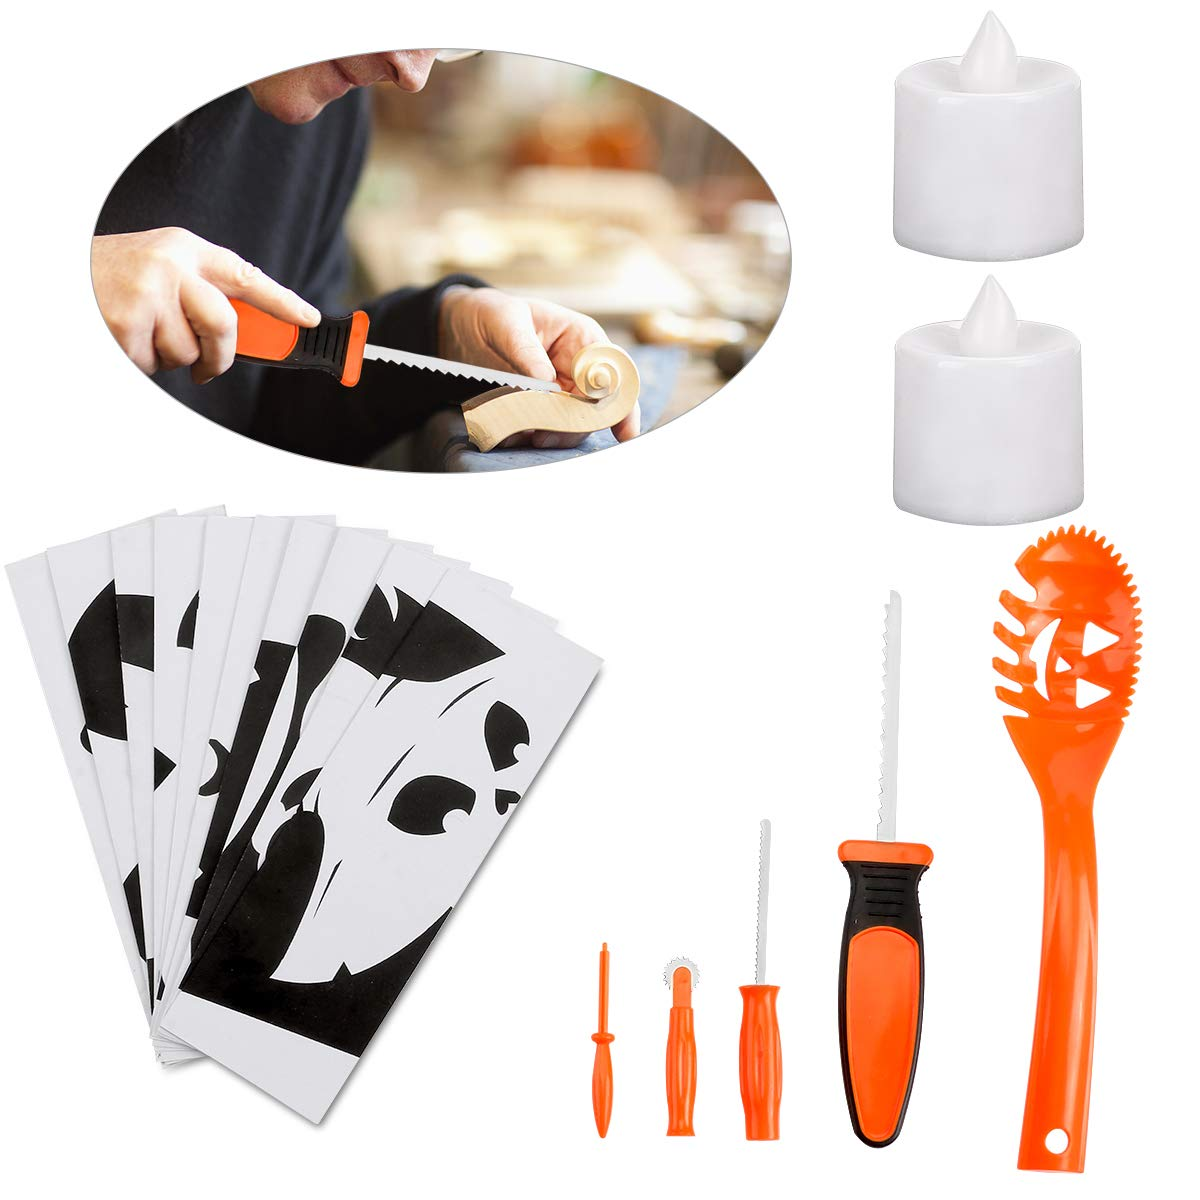 Pumpkin Carving Kit for Kids 5 Easy Halloween Pumpkin Carving Tools Set 2 LED Candles & 10 Carving Templates by Mibor